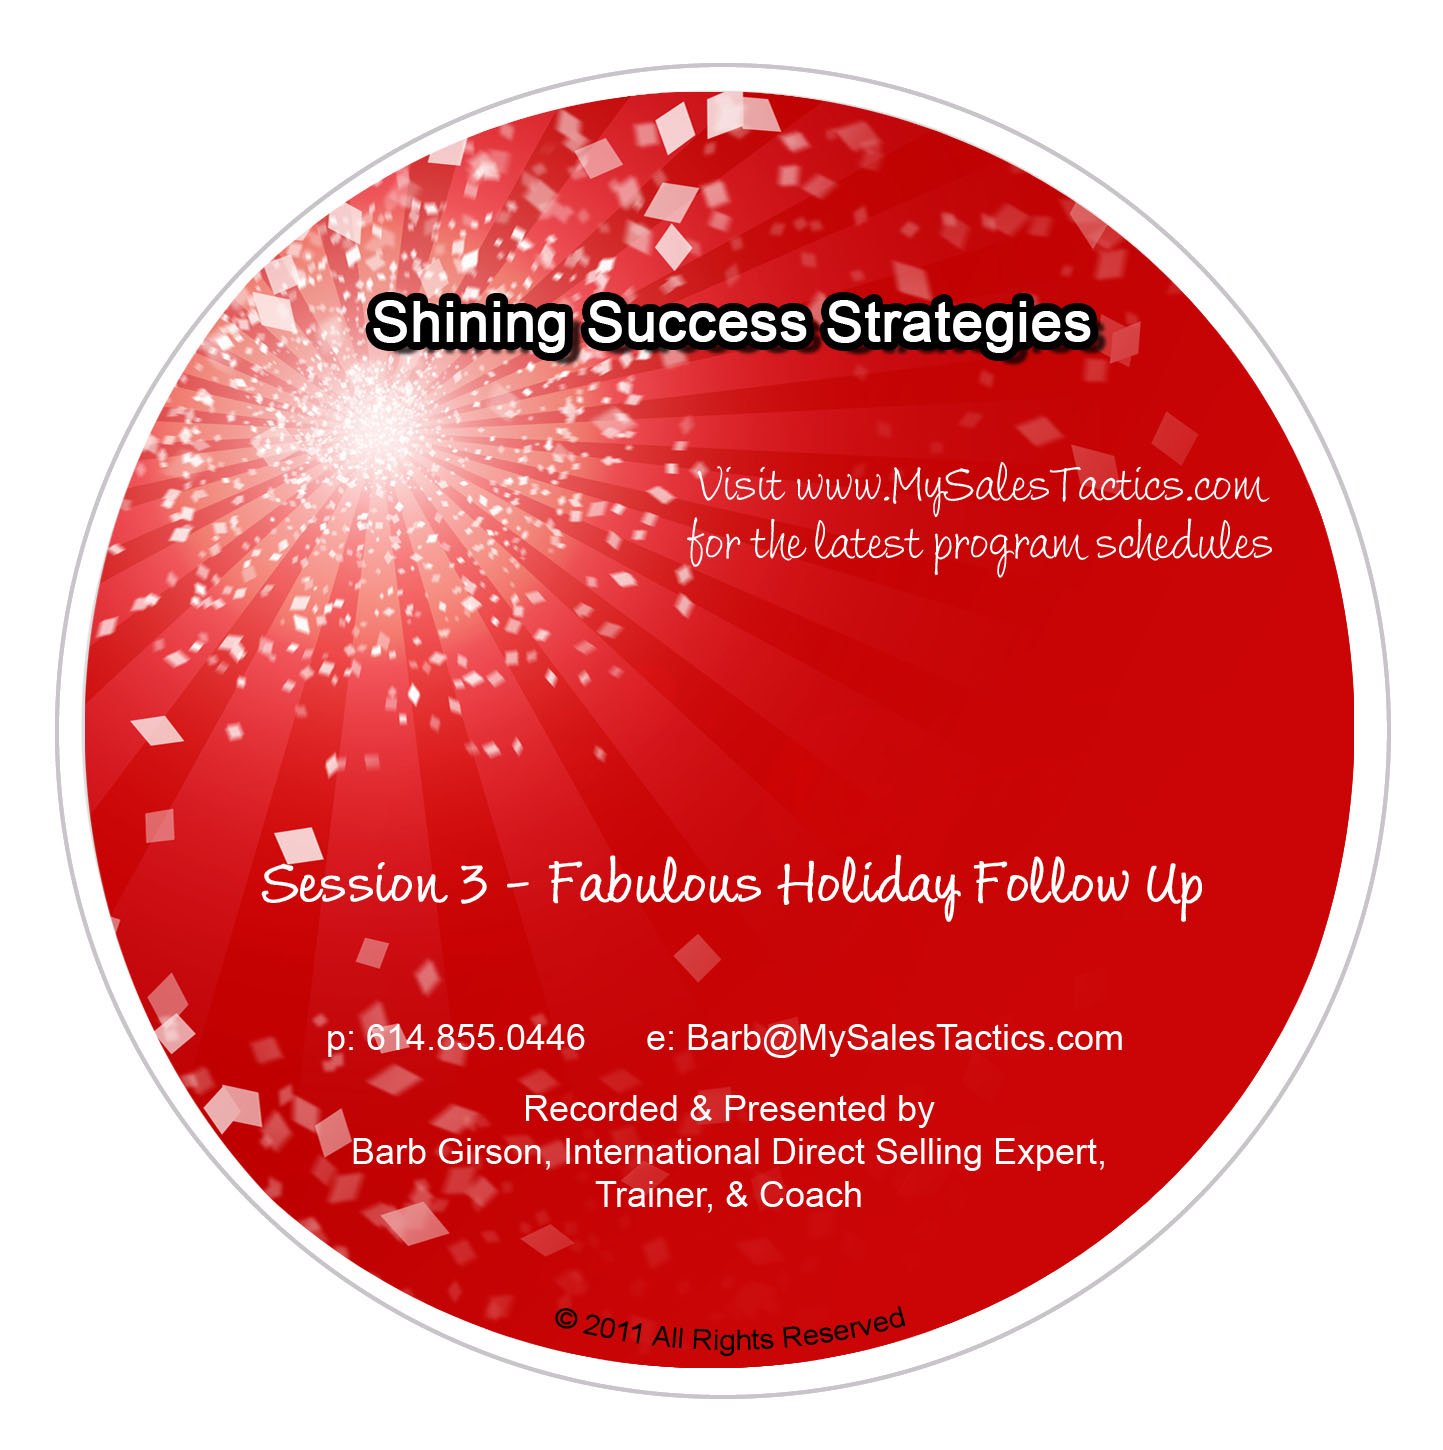 Shining Success Strategies (TM) - Session 3